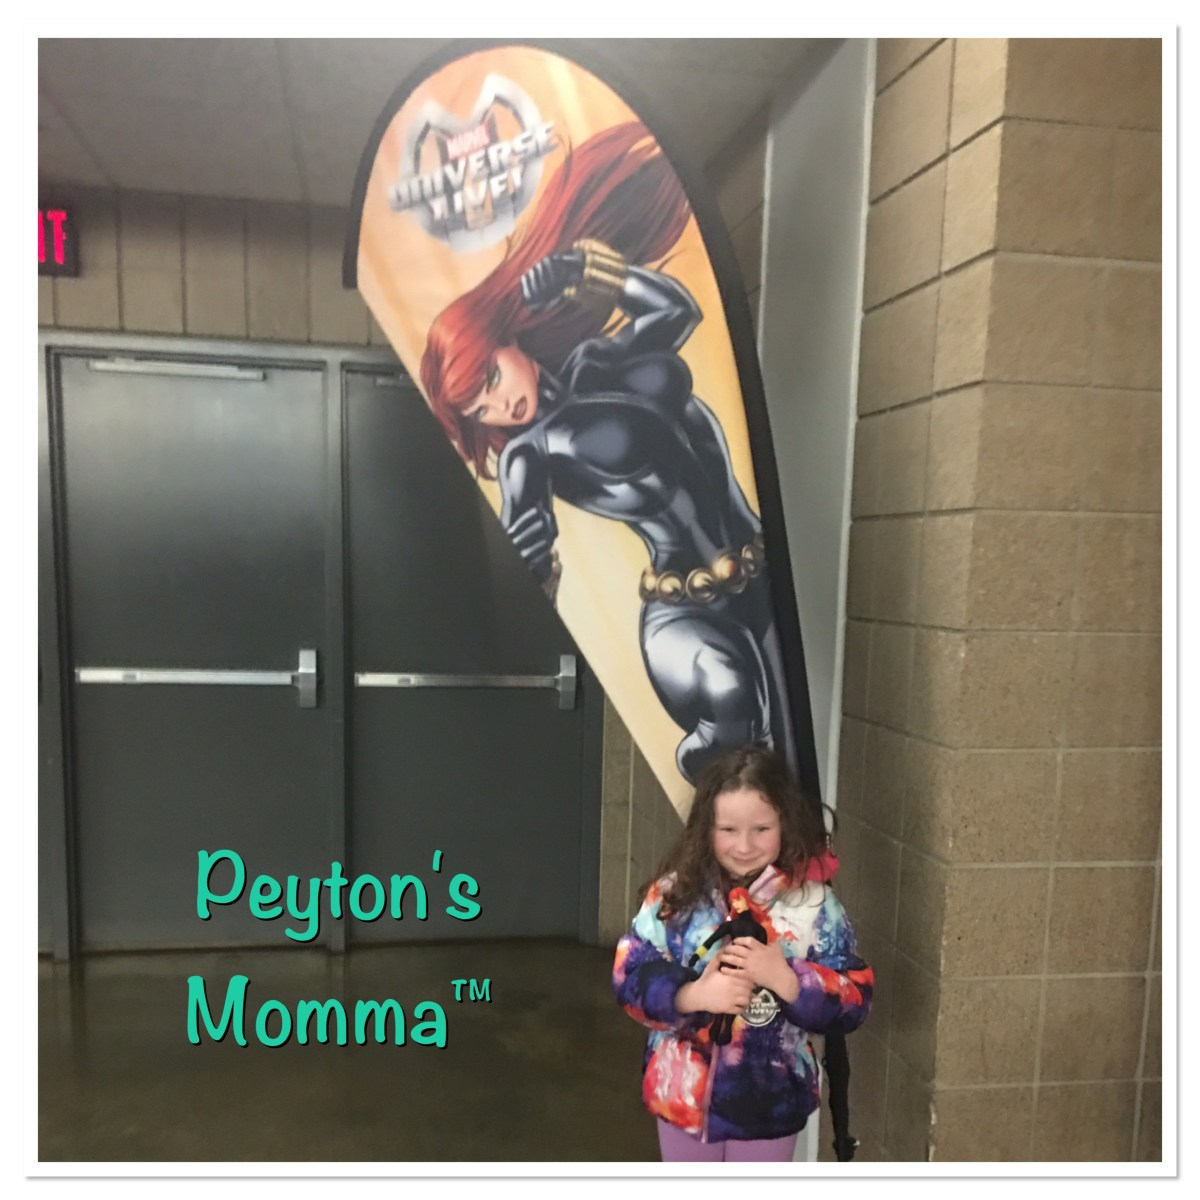 Peyton's Momma Black Widow Marvel Universe Live